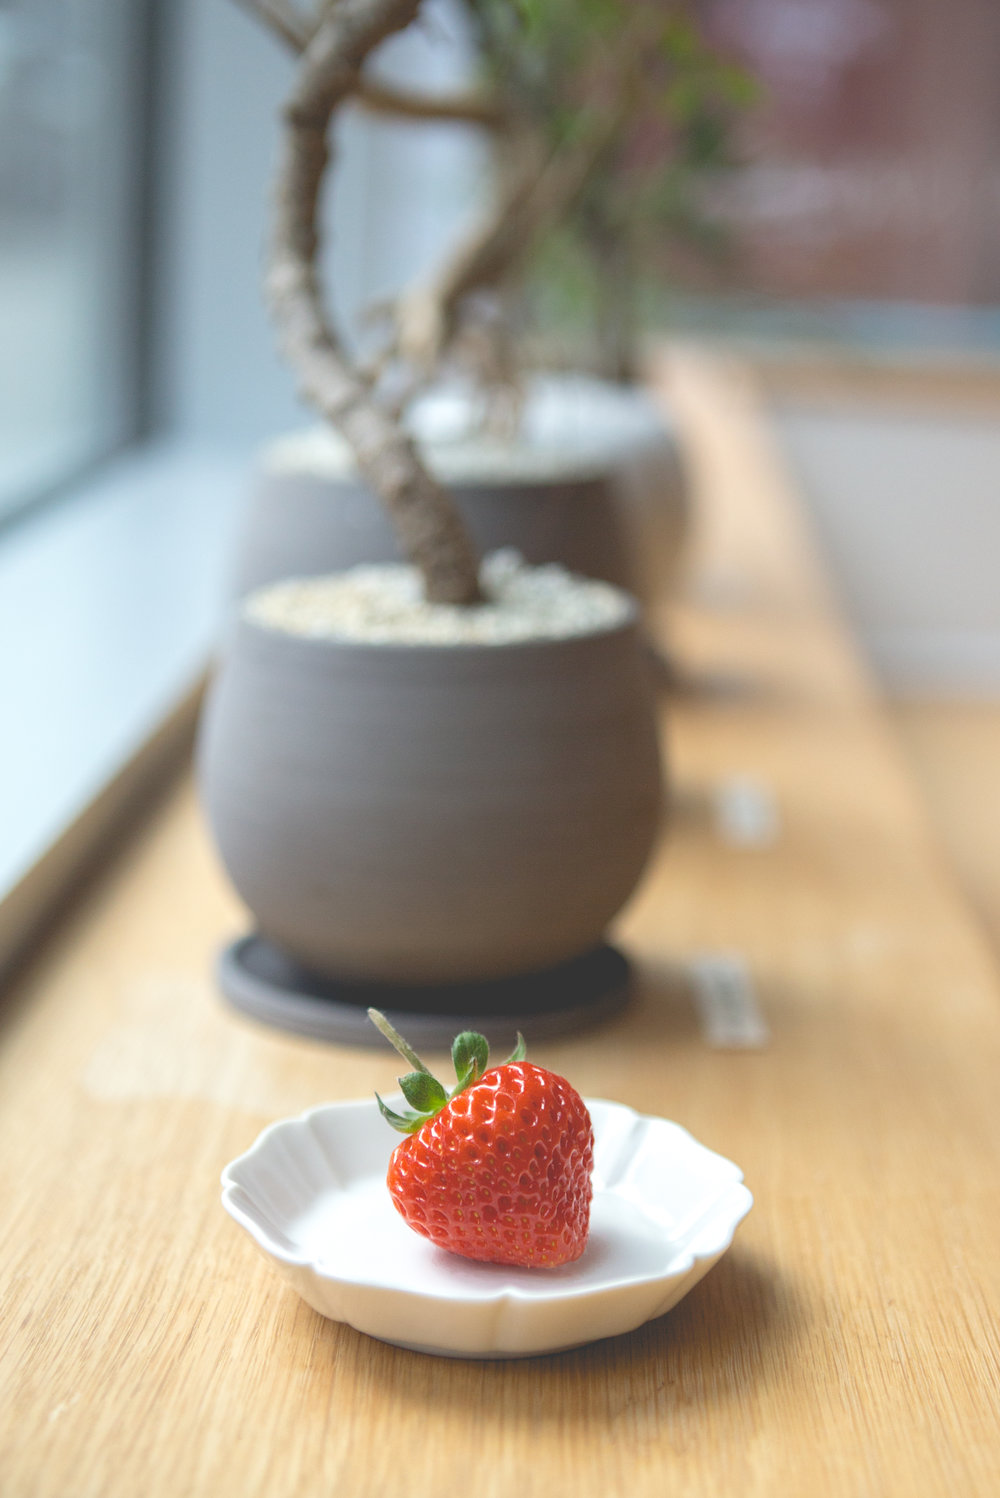 Japanese heritage and craftsmanship.  We admire Nalata Nalata's commitment to telling the stories behind Japanese artisans.  Happy 4th anniversary to the folks at  @nalatanalata !   #oishiiberry   #strawberry  #thepursuitofperfection   #オイシイベリー